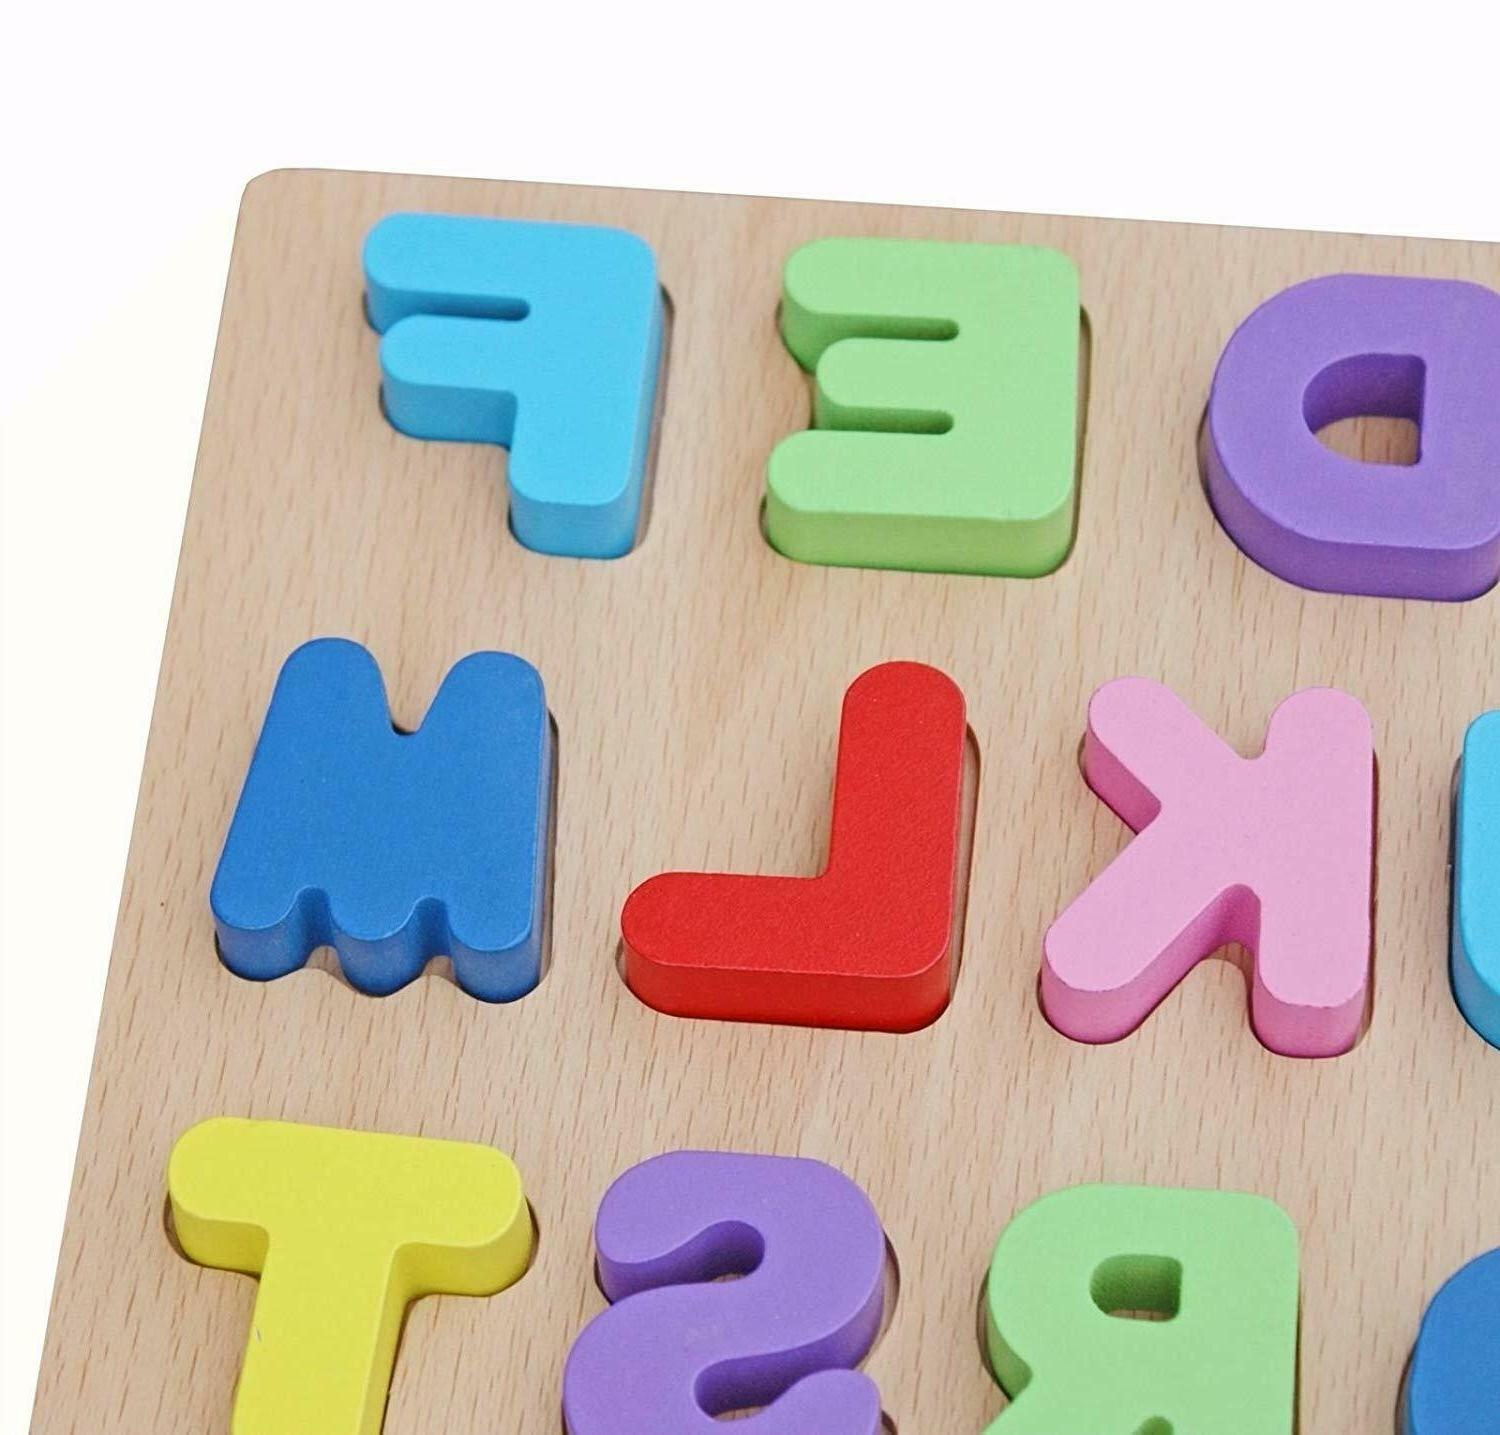 Timy Wooden Puzzle Board Toddlers Early